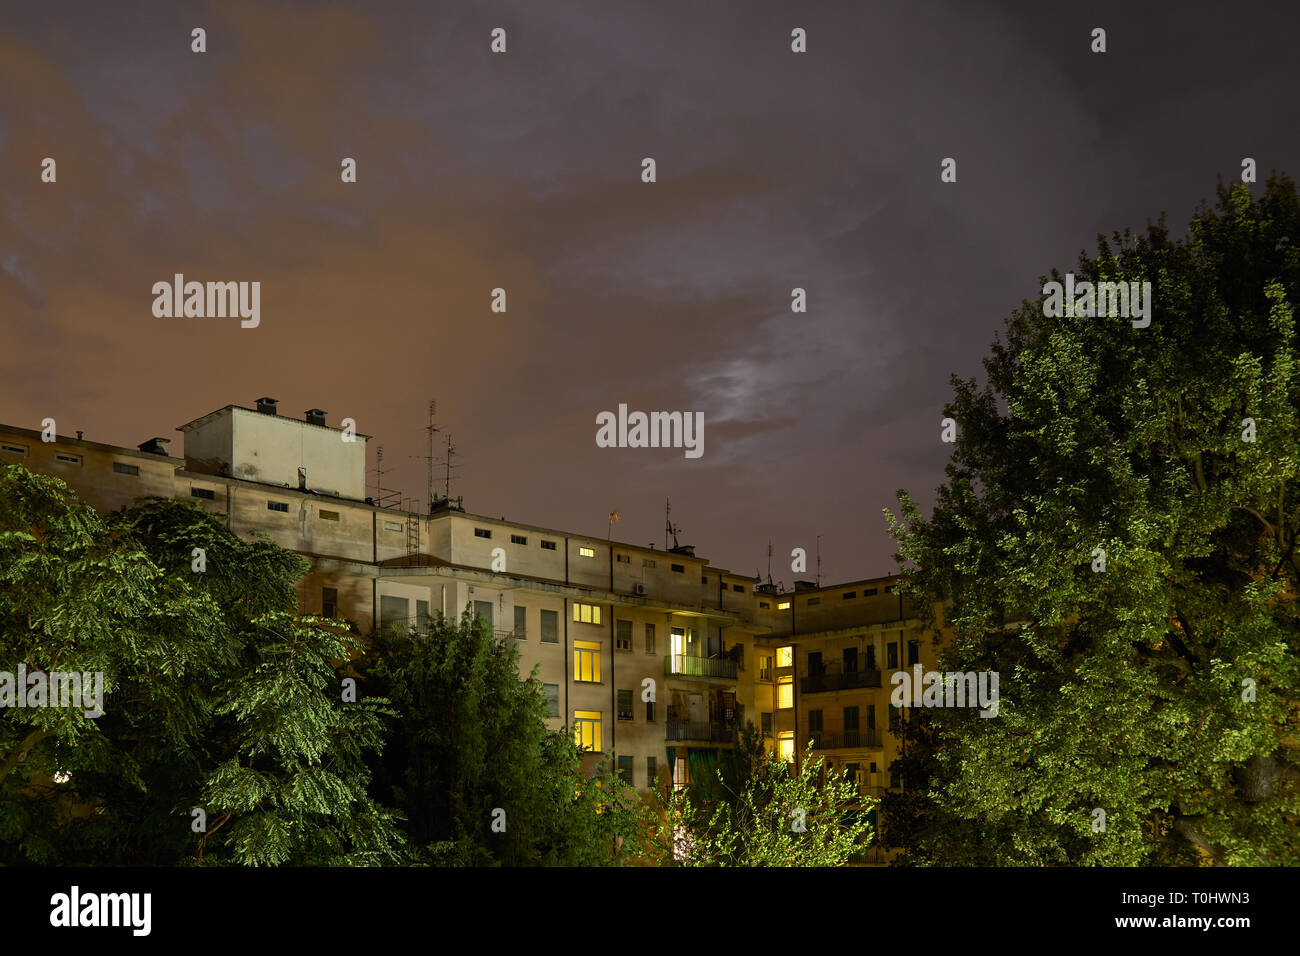 Buildings and green trees at night, illuminated sky in summer Stock Photo